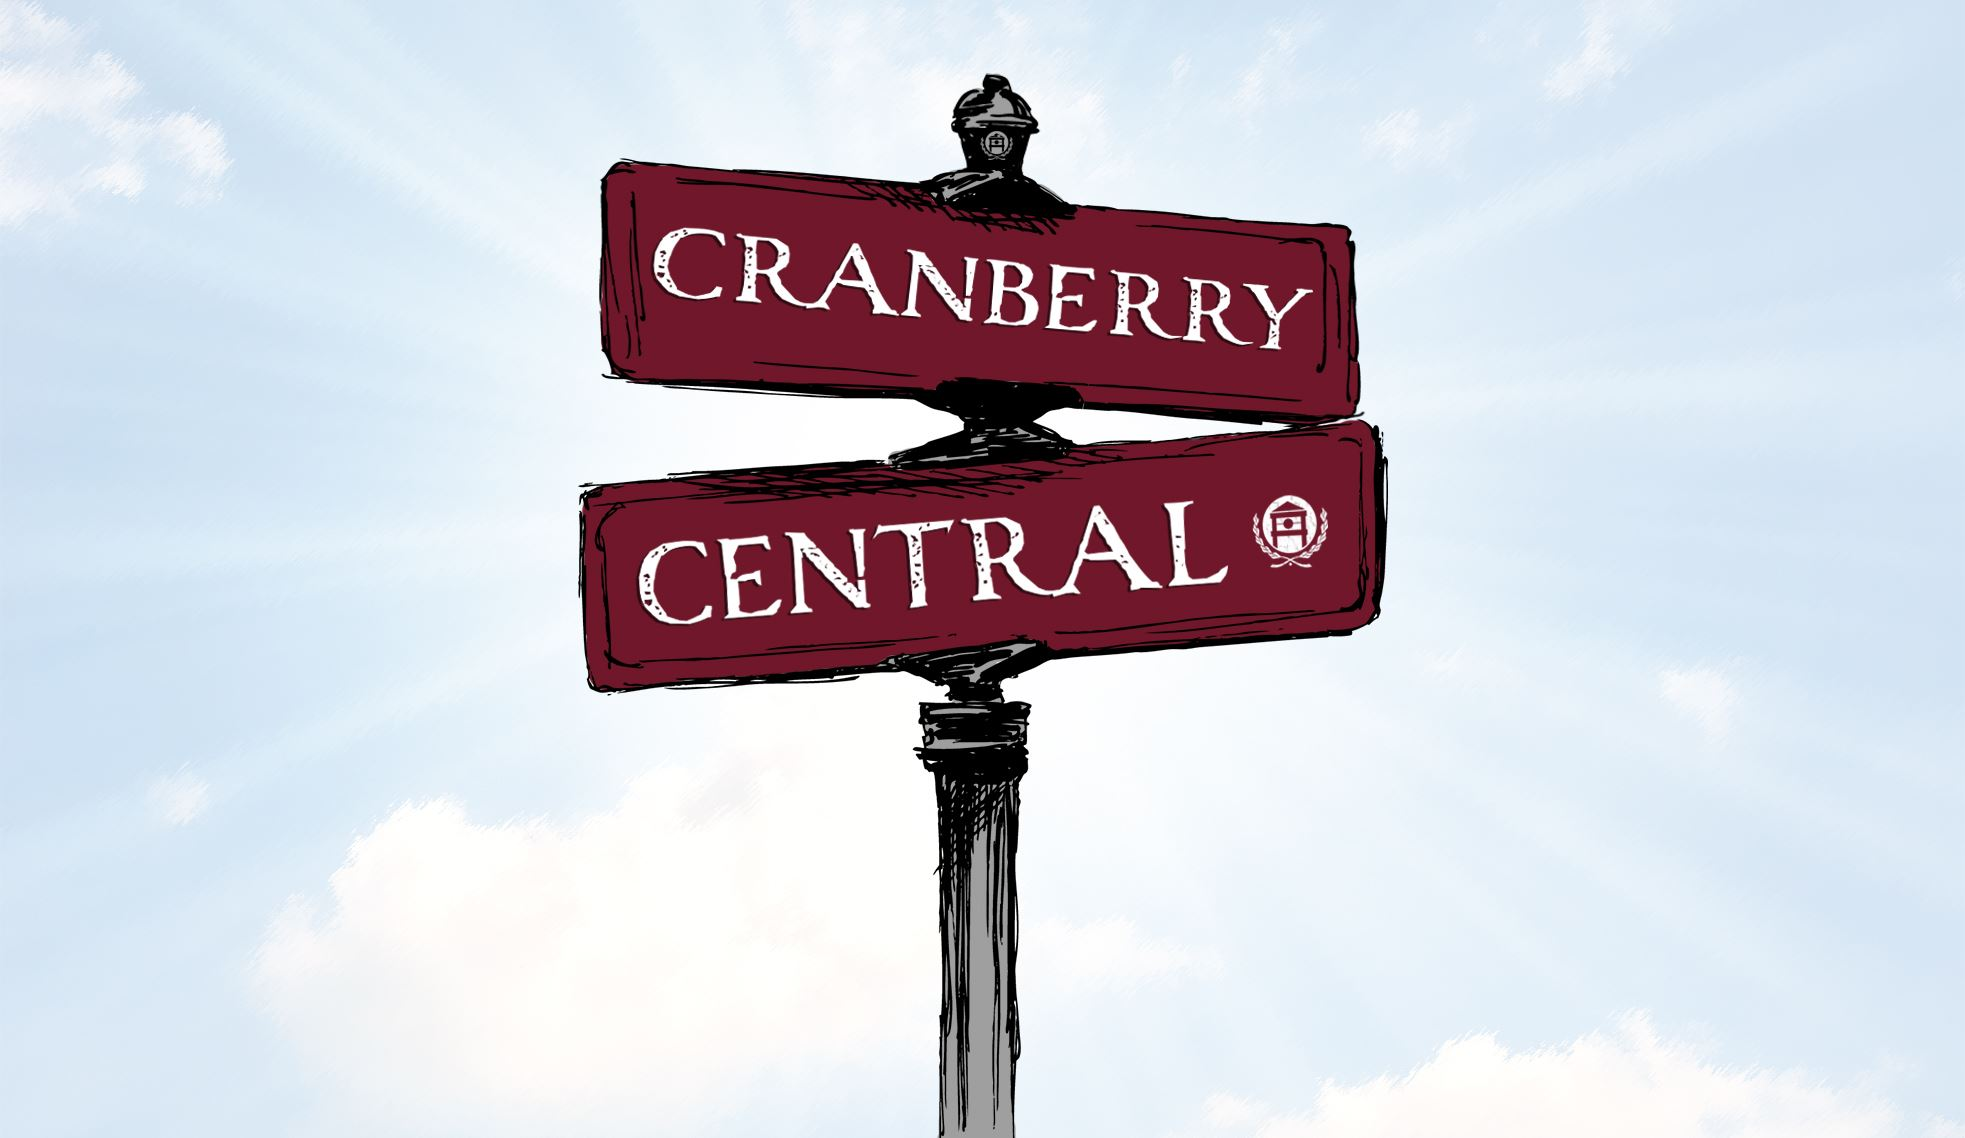 Cranberry Central Opens in new window